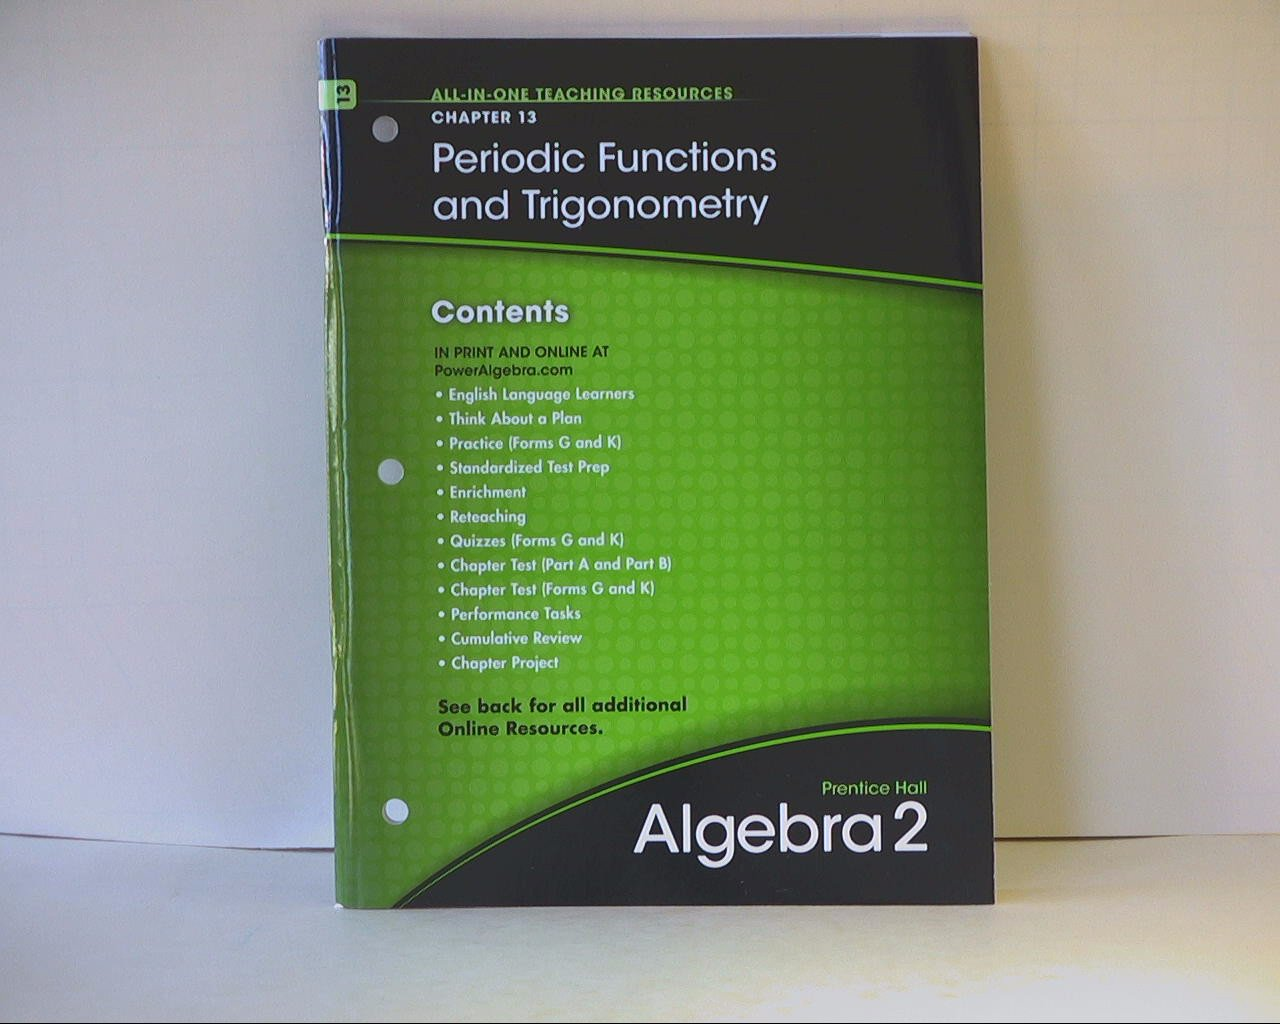 Prentice Hall Algebra 2 Chapter 13: Periodic Functins and Trigonometry, All-in-one teaching resources ISBN 013368928X 9780133689280 2010 by Pearson pdf epub